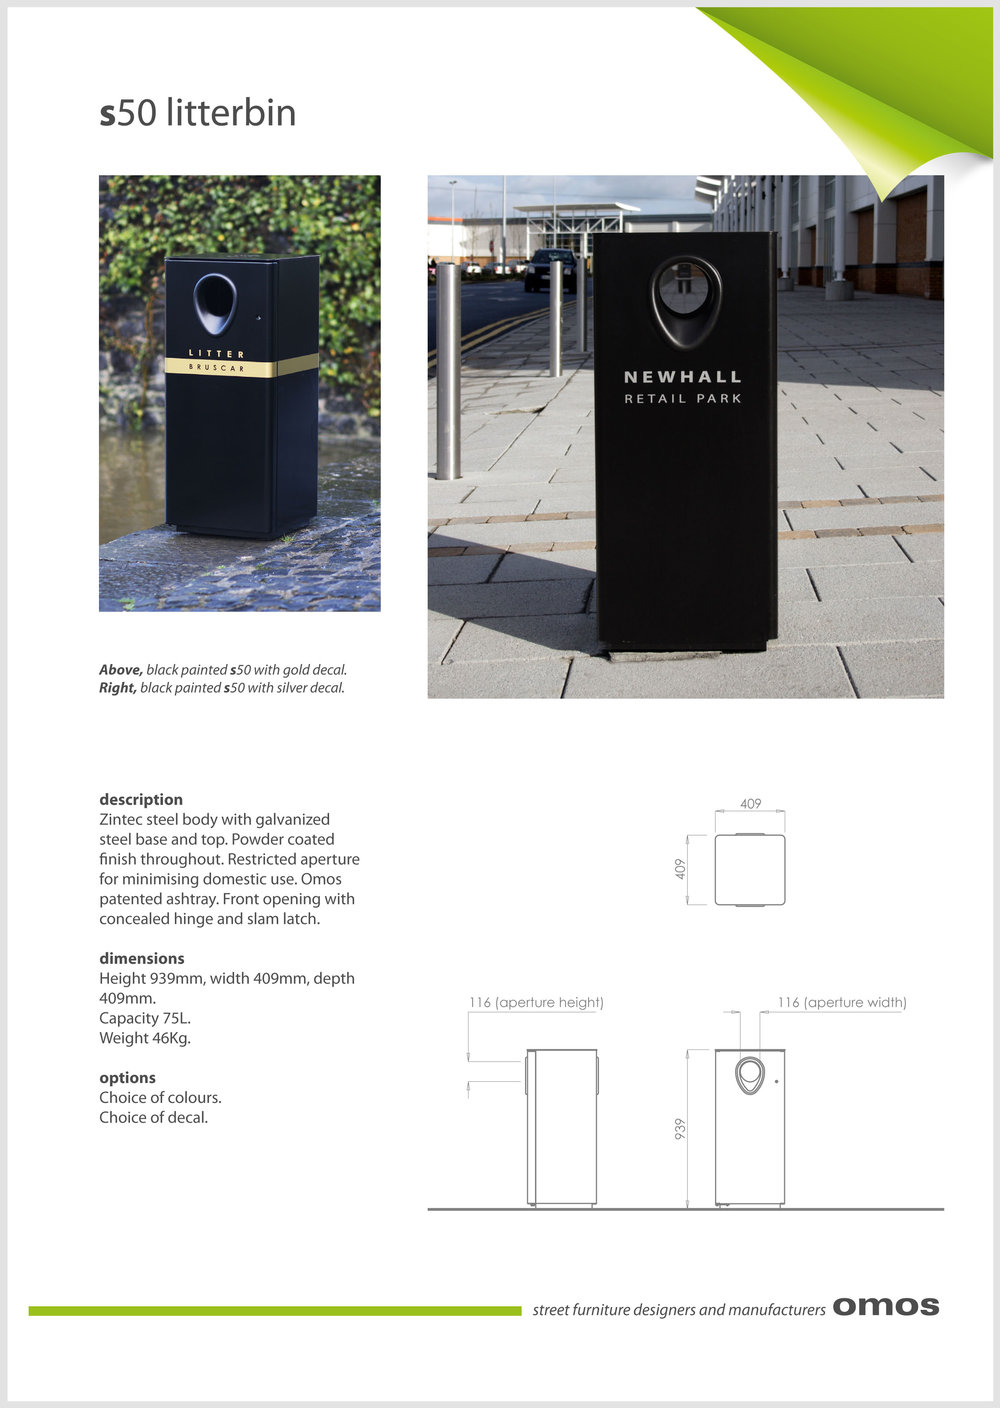 s50 litter bin data sheet